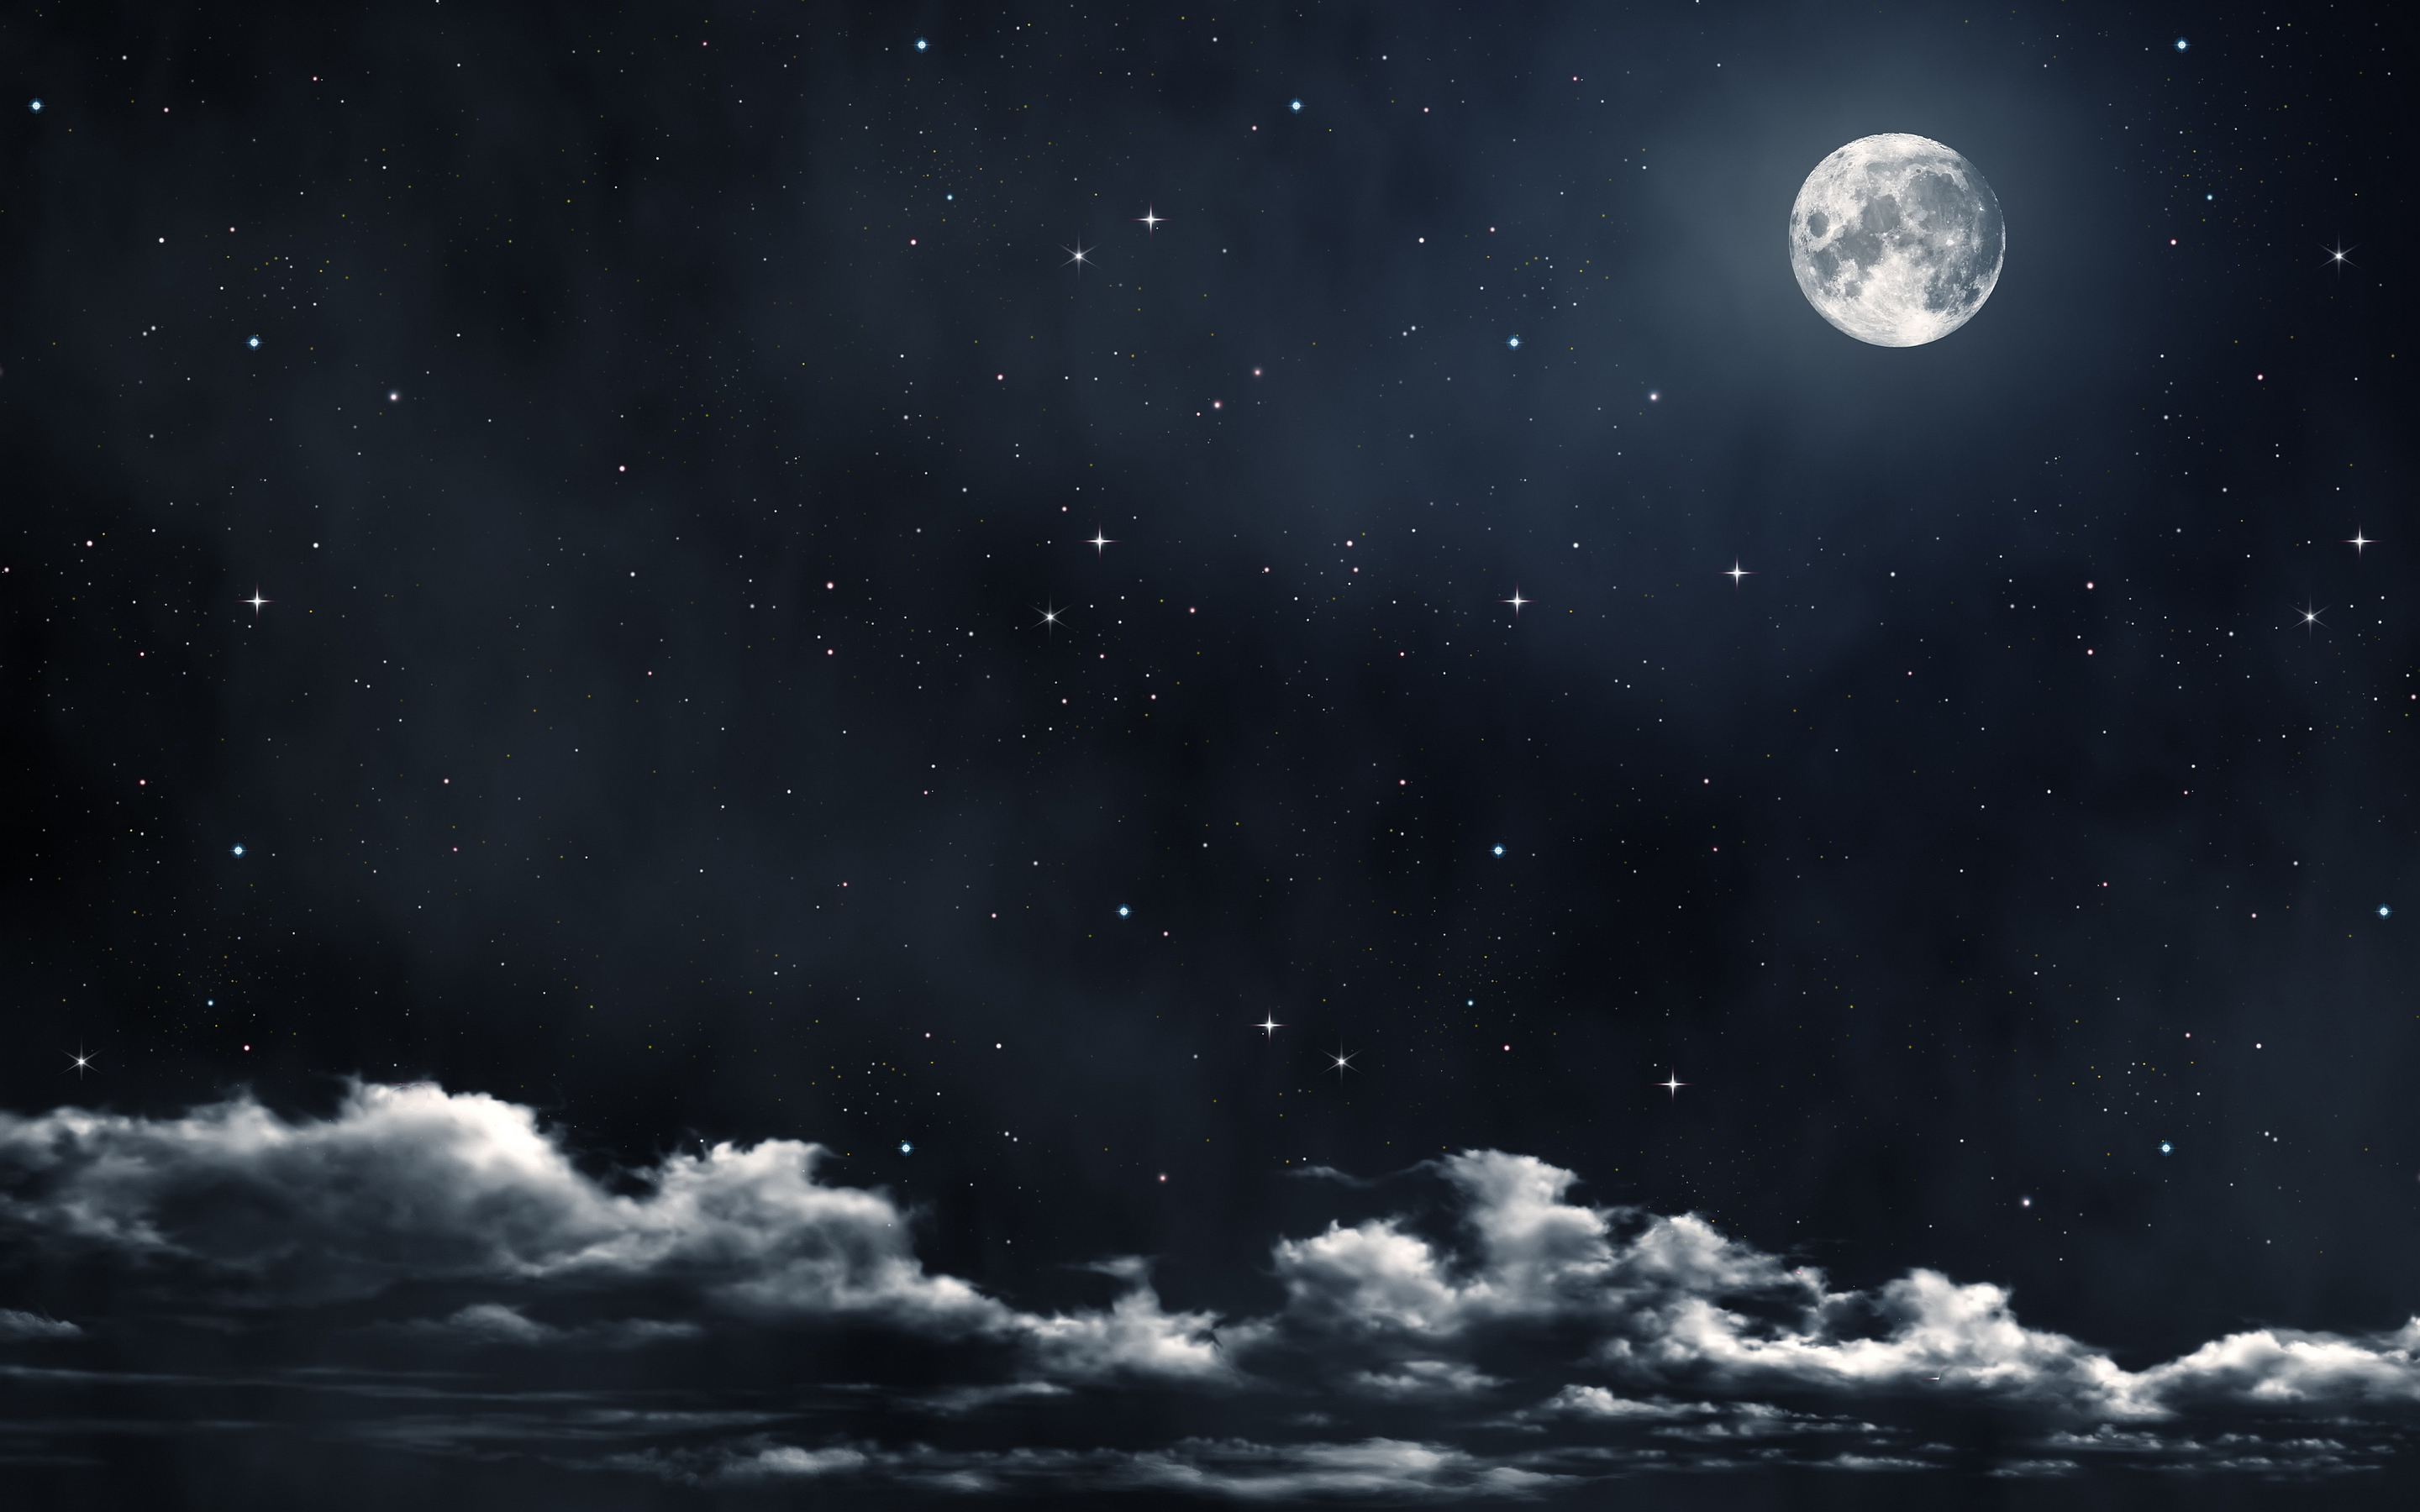 Moon And Stars Quotes: Quotes About The Moon And Stars. QuotesGram